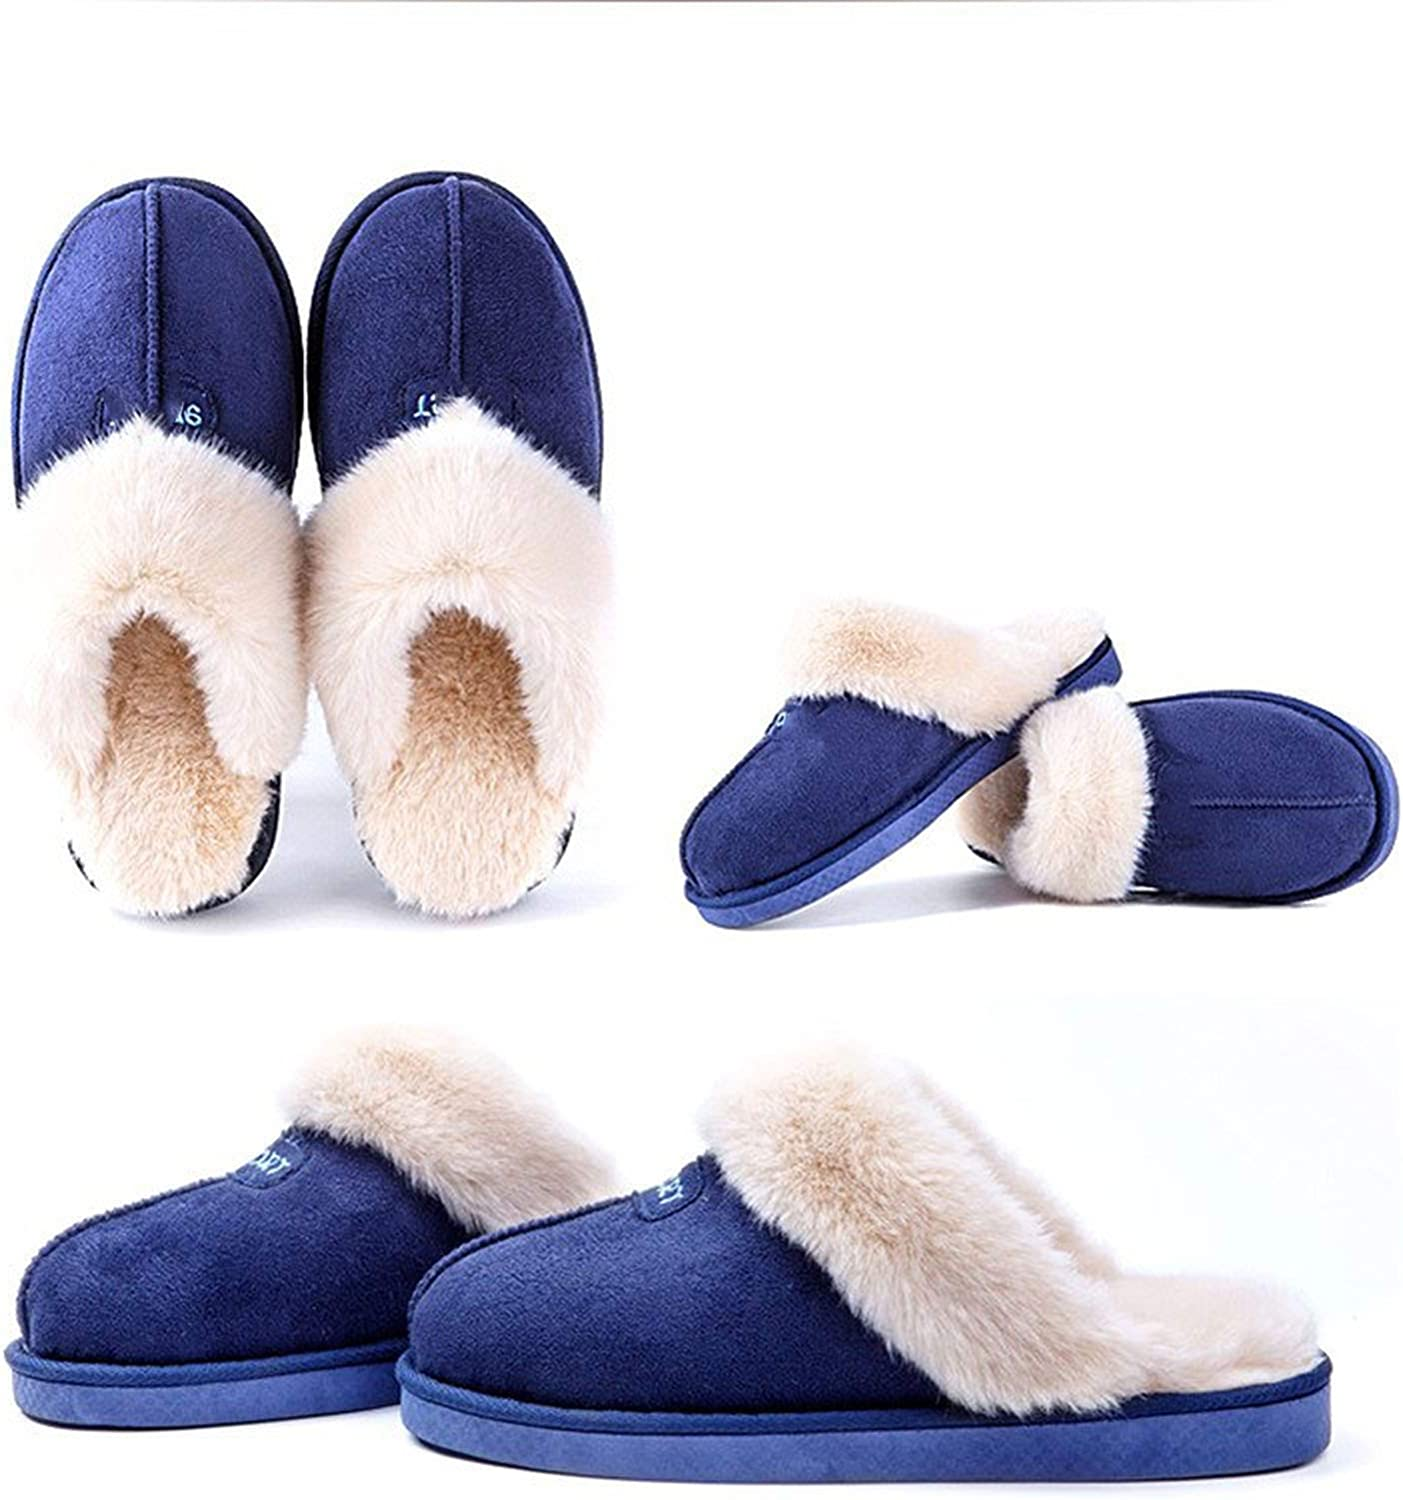 Can't be satisfied Women Winter Home Slippers Faux Suede Non-Slip Soft Warm House Slippers Indoor Bedroom Couples,bluee,41